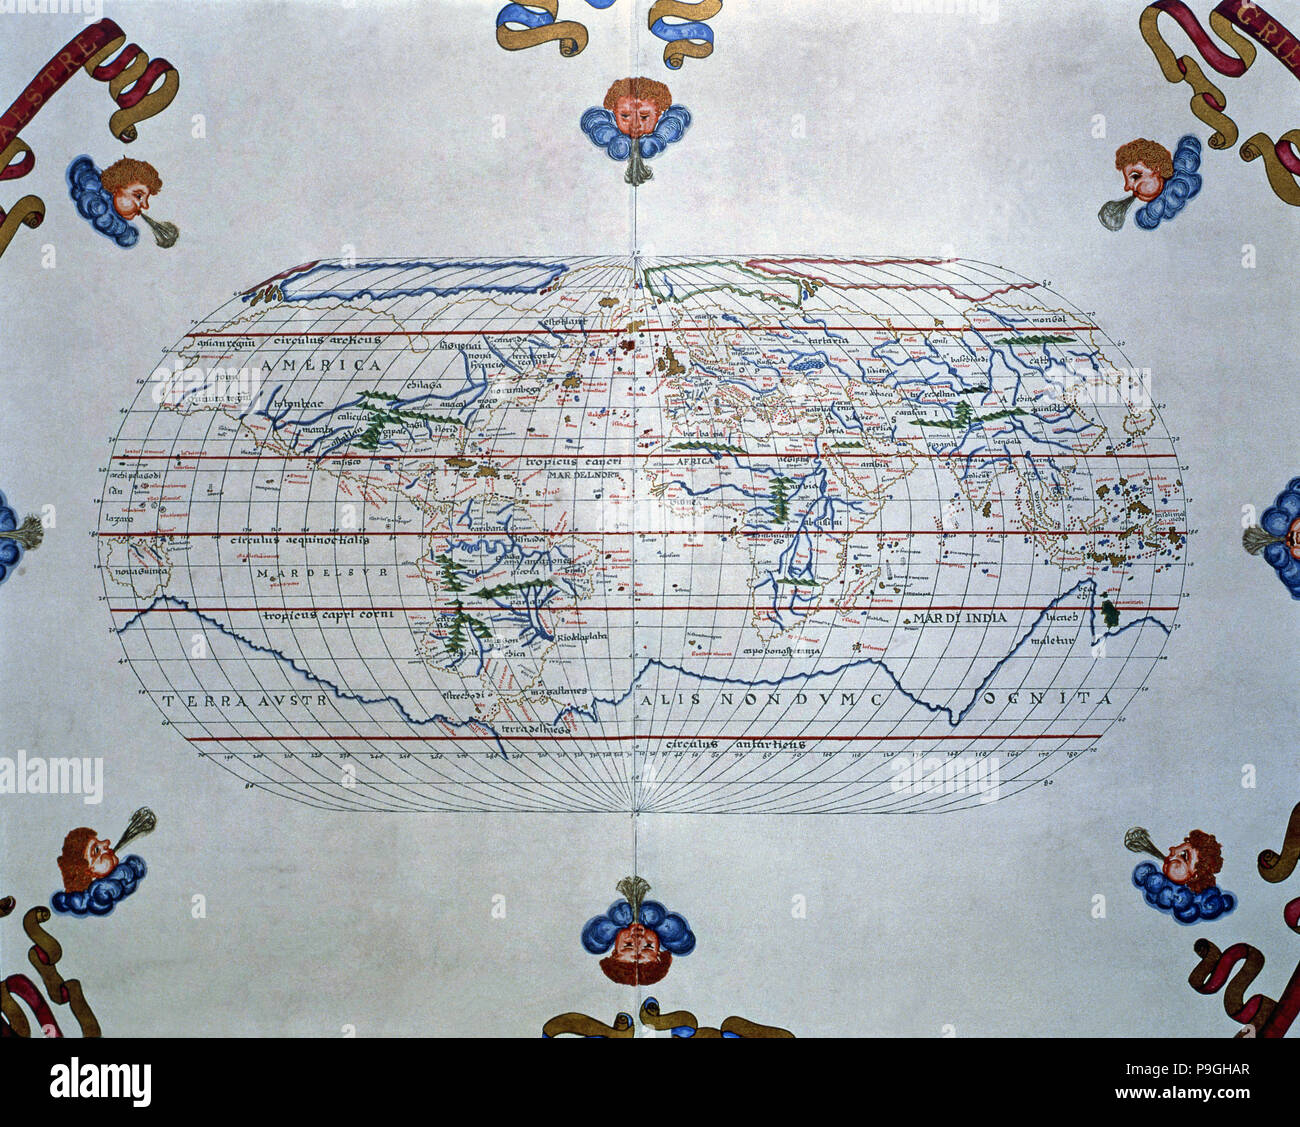 Atlas of Joan Martines, Messina, 1582. World map of the lands known in the 16th century. Stock Photo